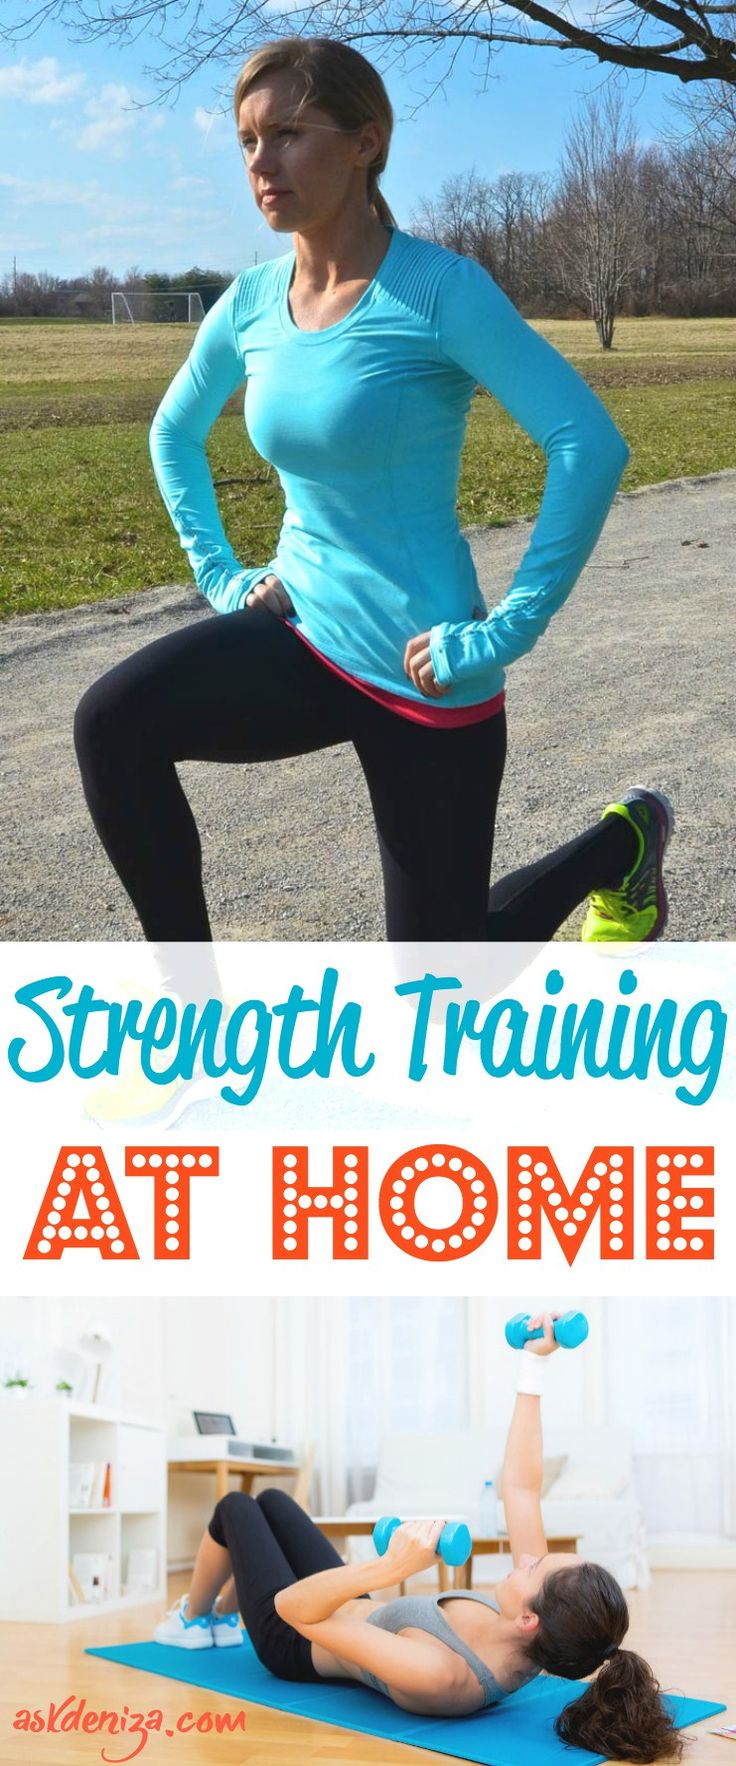 How do I train at home with weights? You don't need fancy equipment or pricey gym memberships to get healthy and fit. Use these training tips to build muscle at home. Muscle mass burns more calories and will help you lose fat and stay lean year around, while working out in the comfort of your living room! @askdeniza